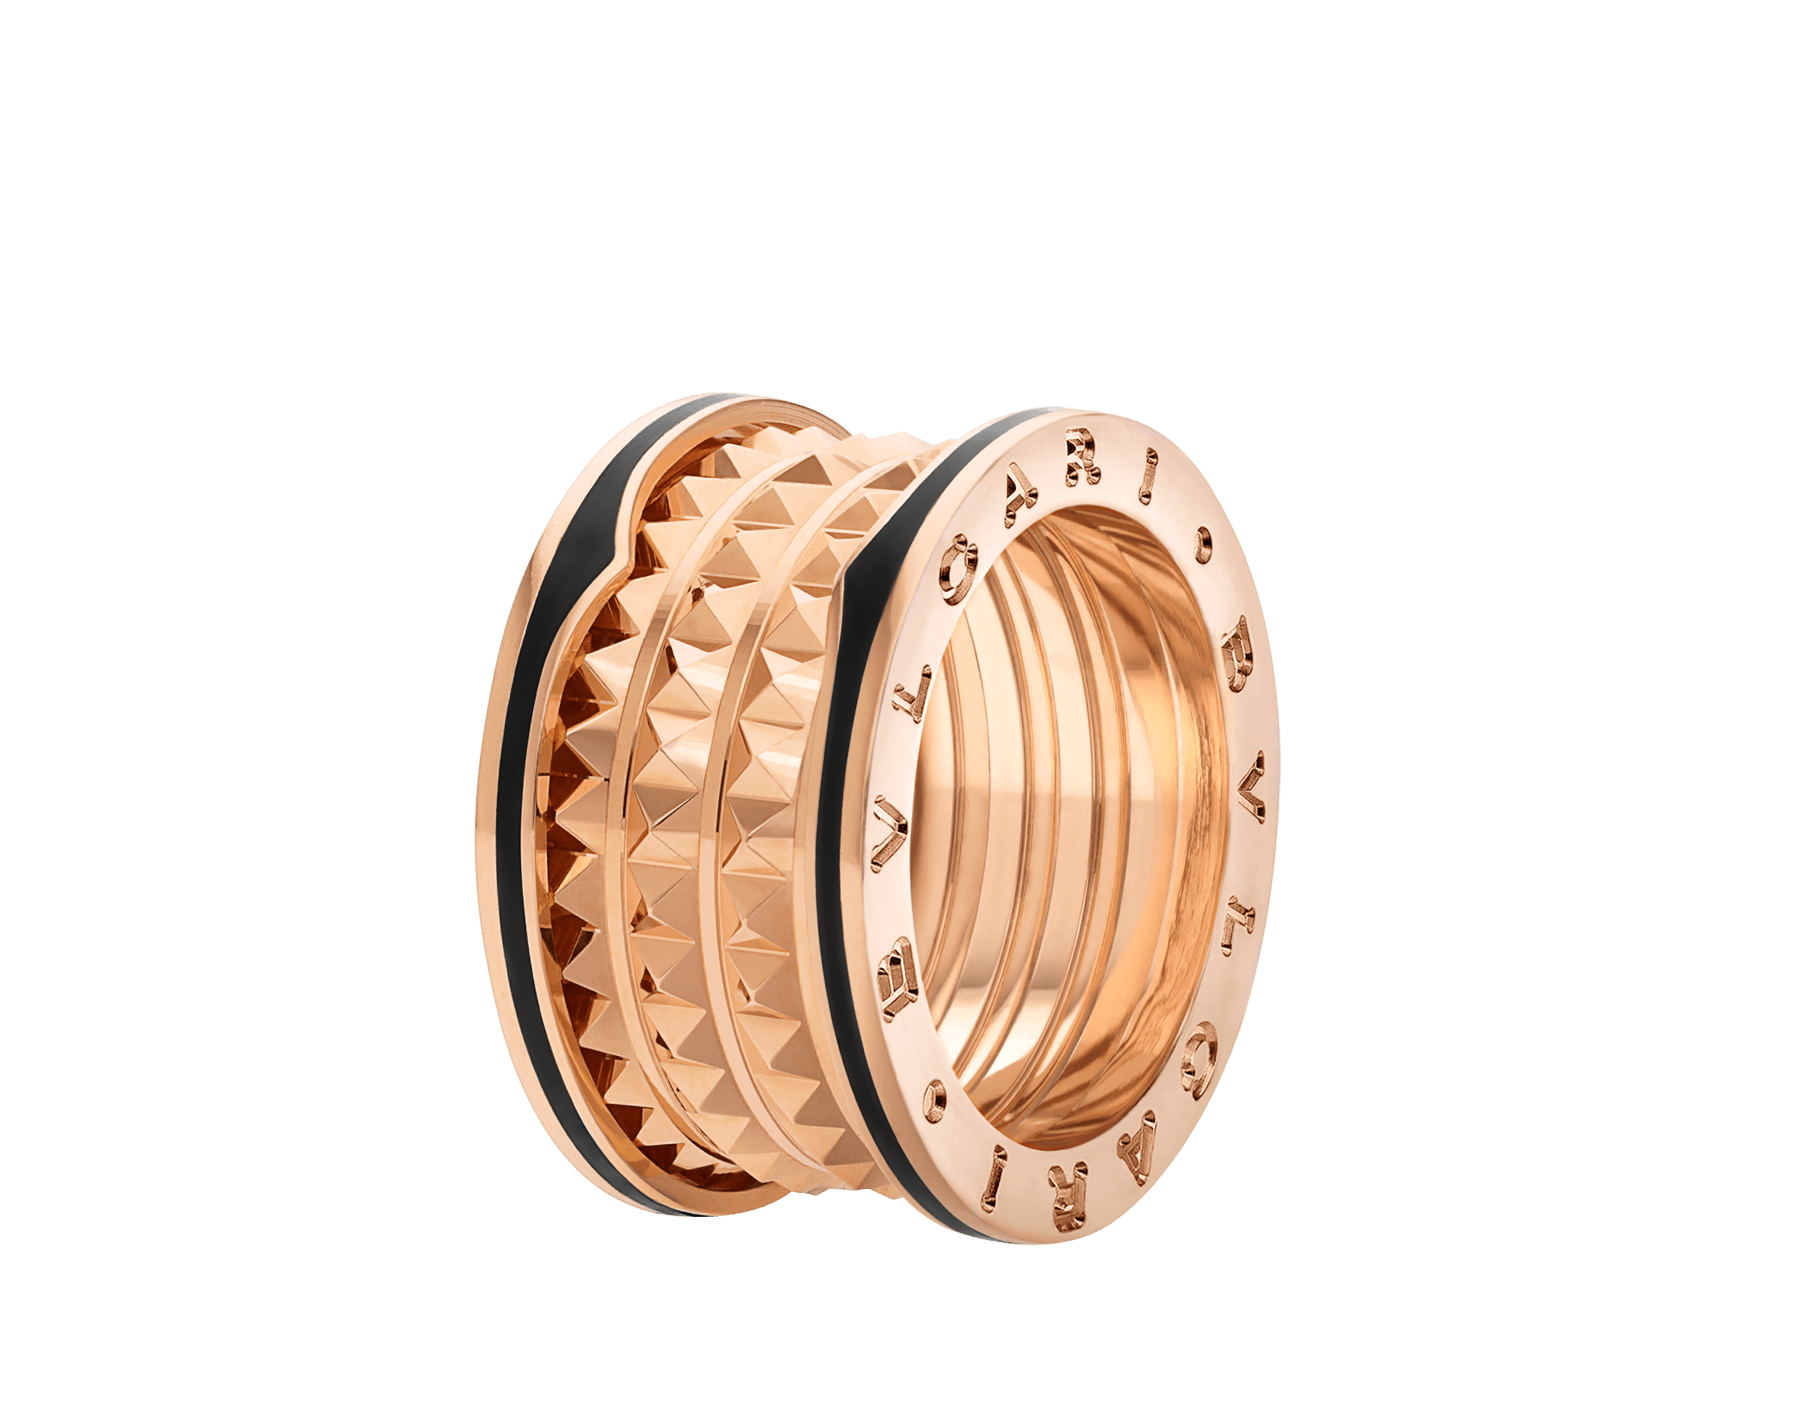 B.zero1 Rock four-band ring in 18 kt rose gold with studded spiral and black ceramic inserts on the edges. AN859089 image 1